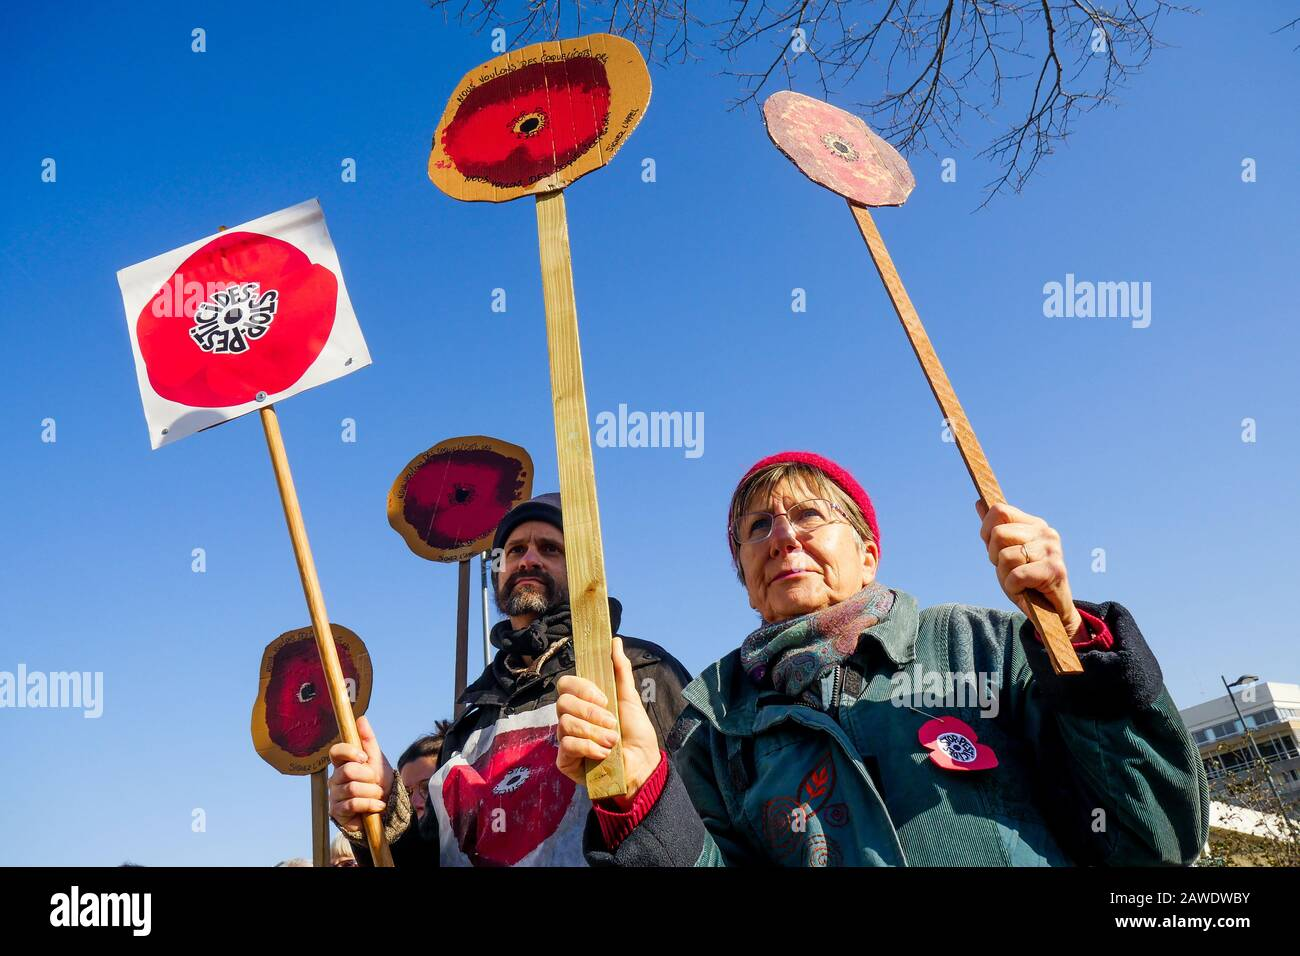 """Nous Voulons des  Coquelicots"" activists protest against protest againts the use of SDHI pesticides, Lyon Gerland, France) Stock Photo"